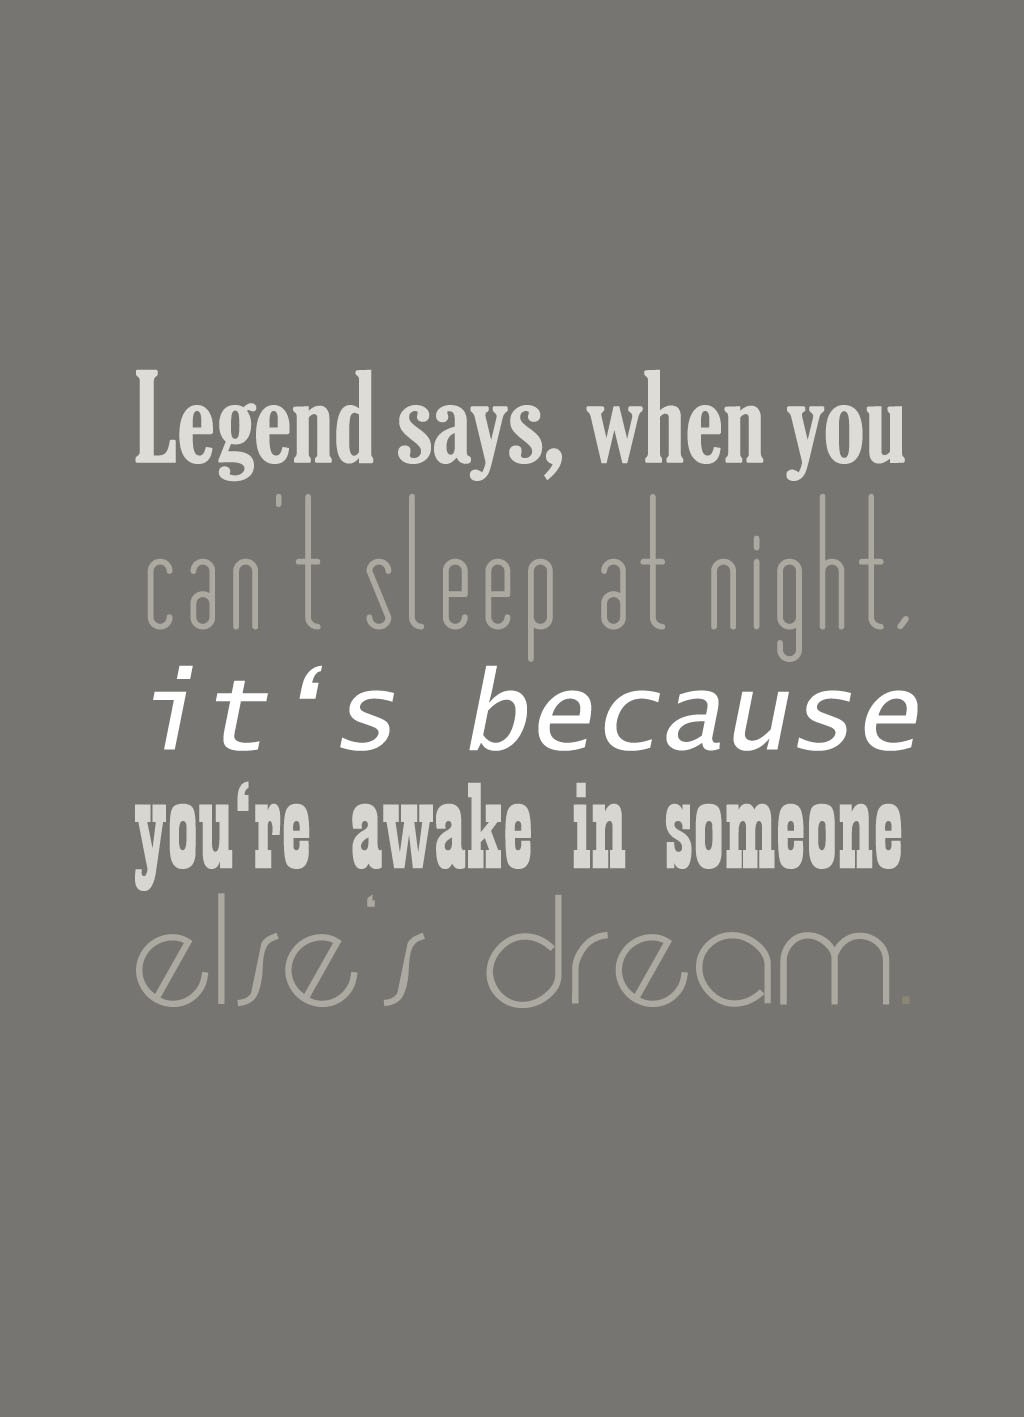 Quote of the Day :: Legend says, when you can't sleep aat night, it's because you're awake in someone else's dream